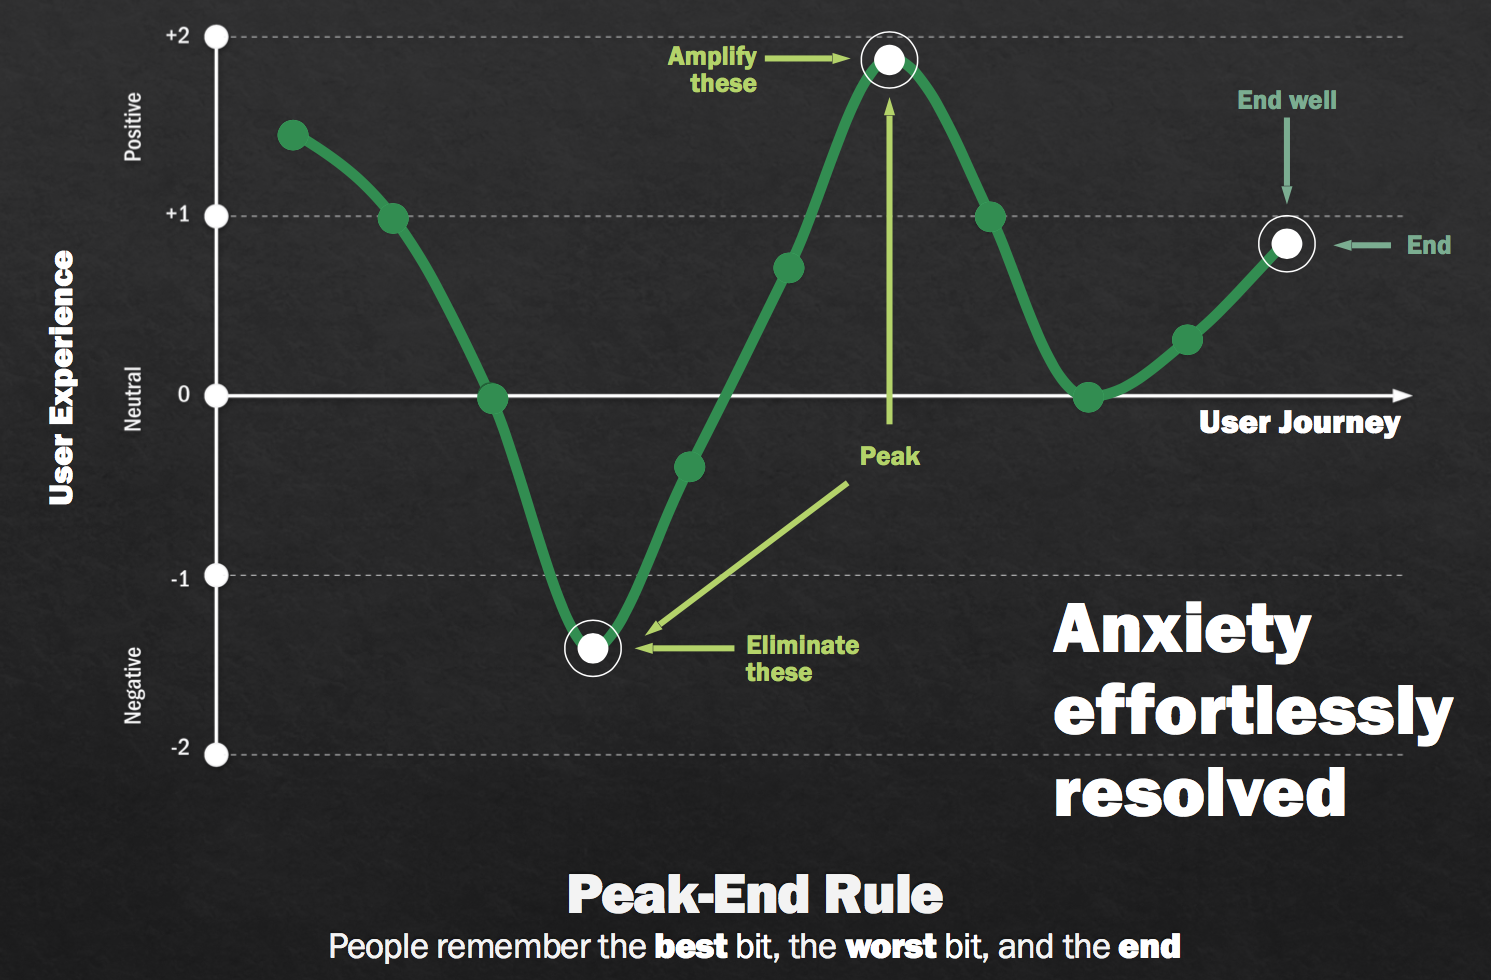 Peak-End rule diagram